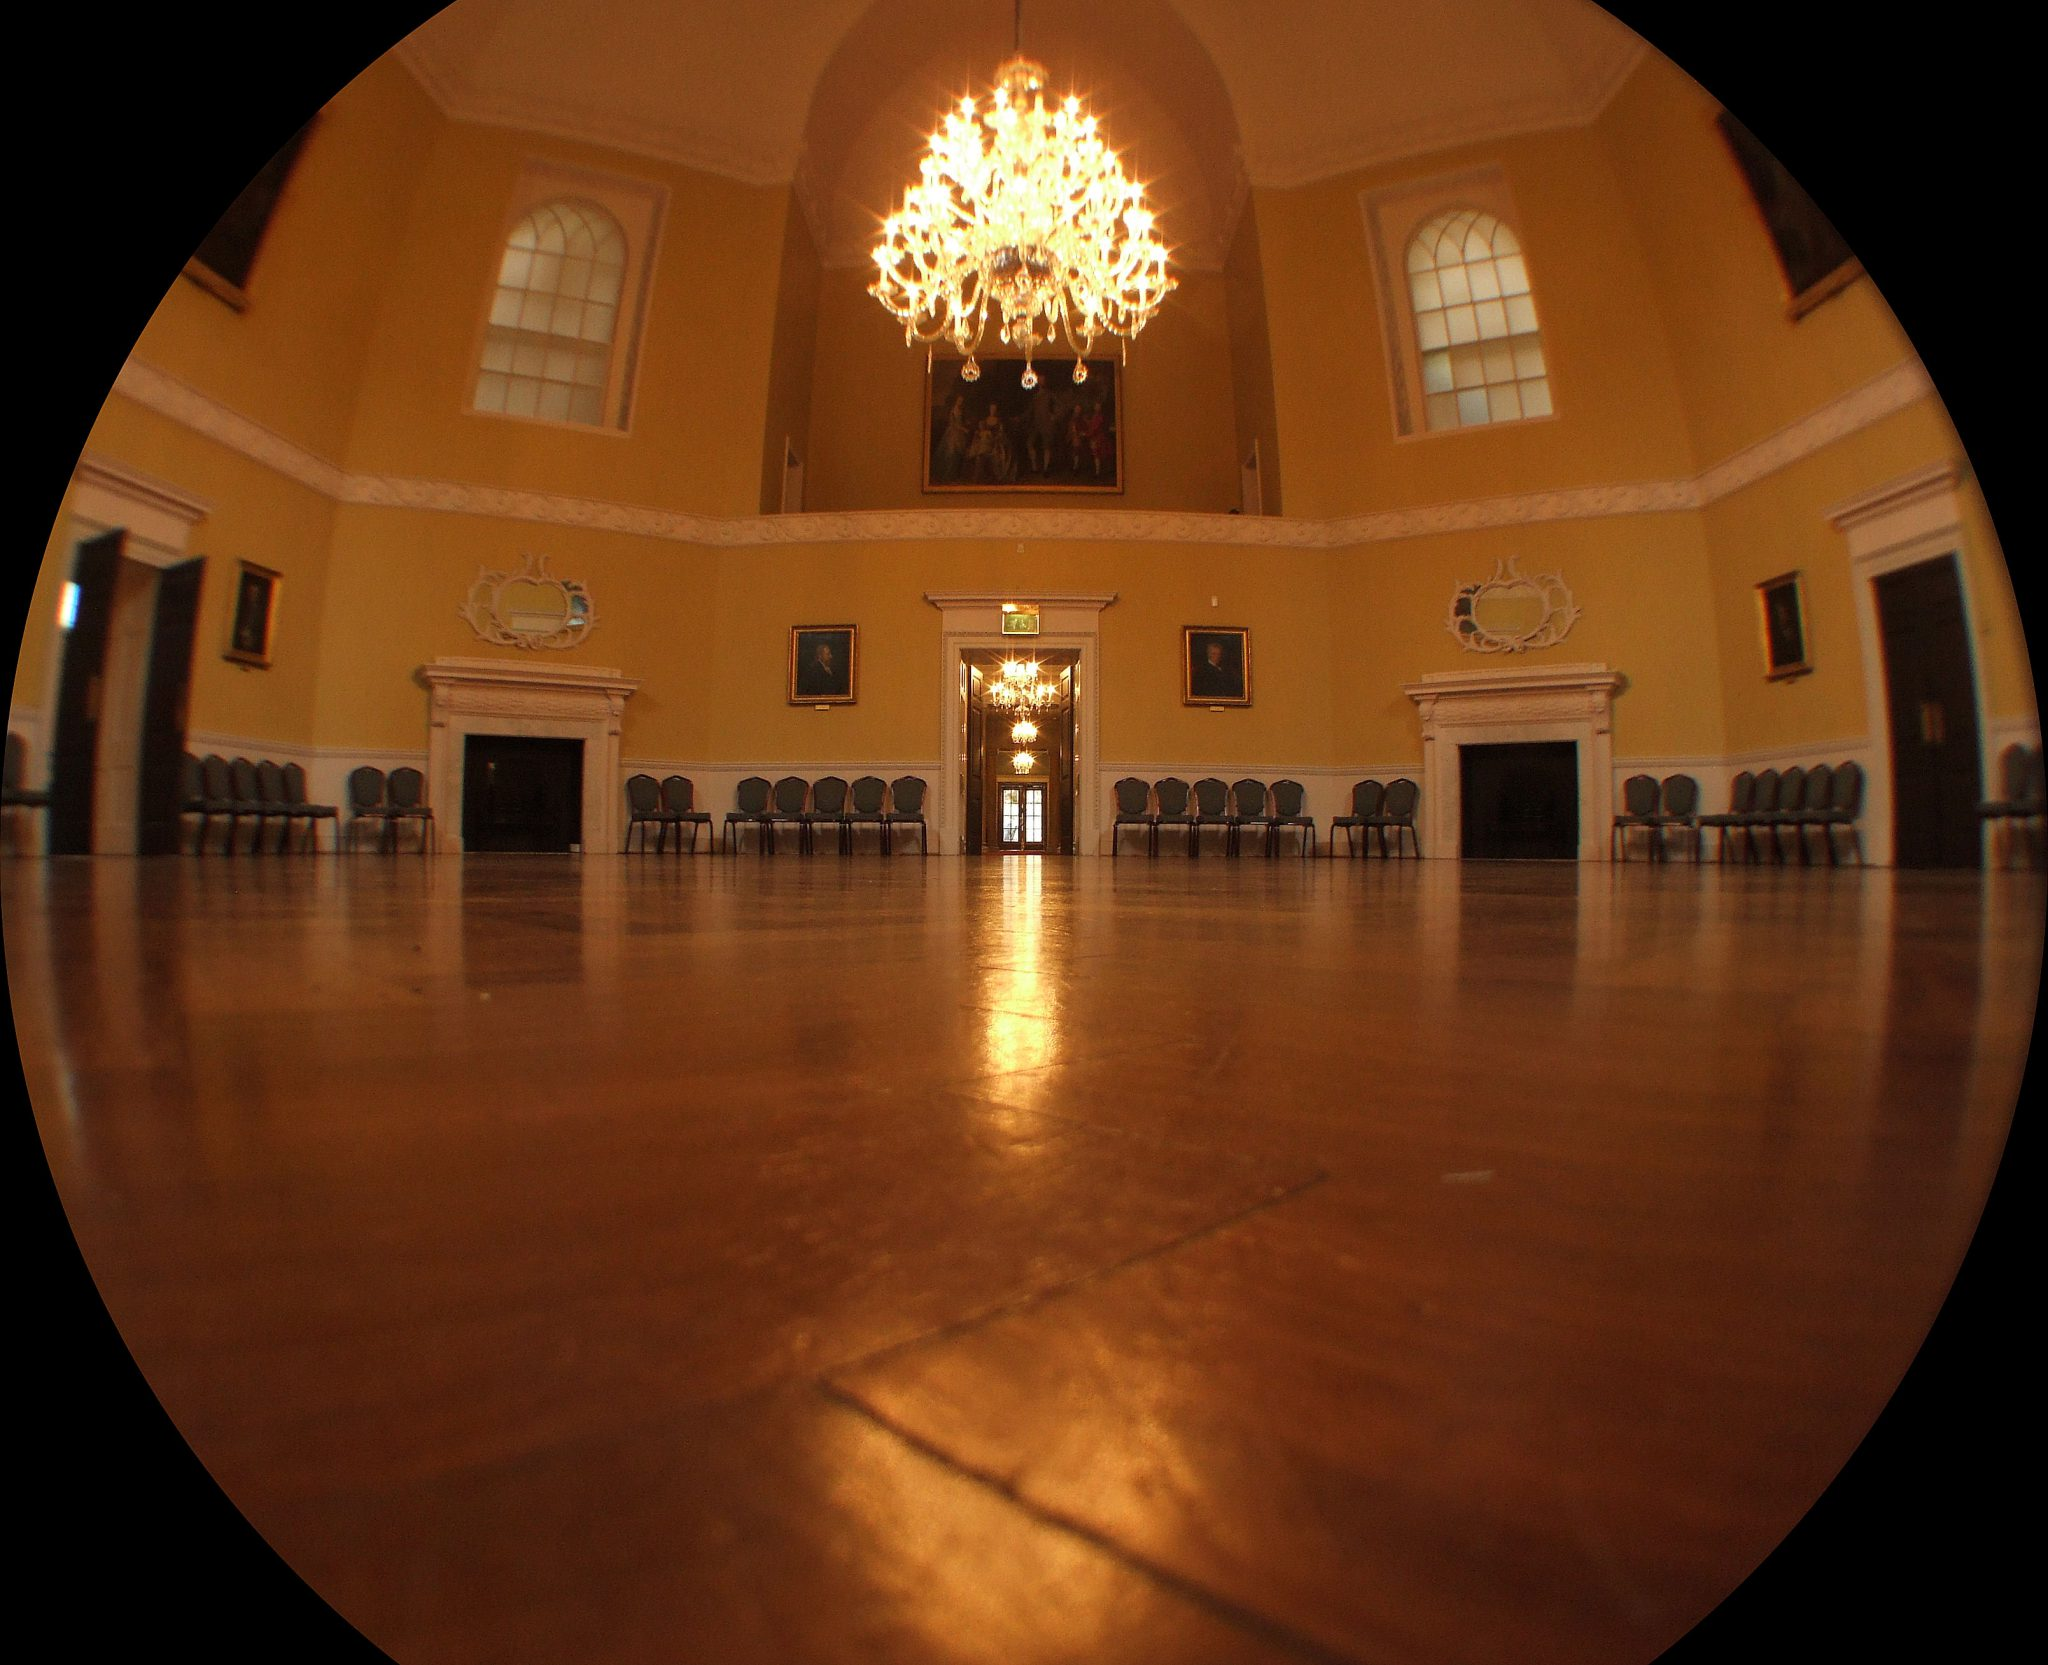 The Octagon Room at The Assembly Rooms